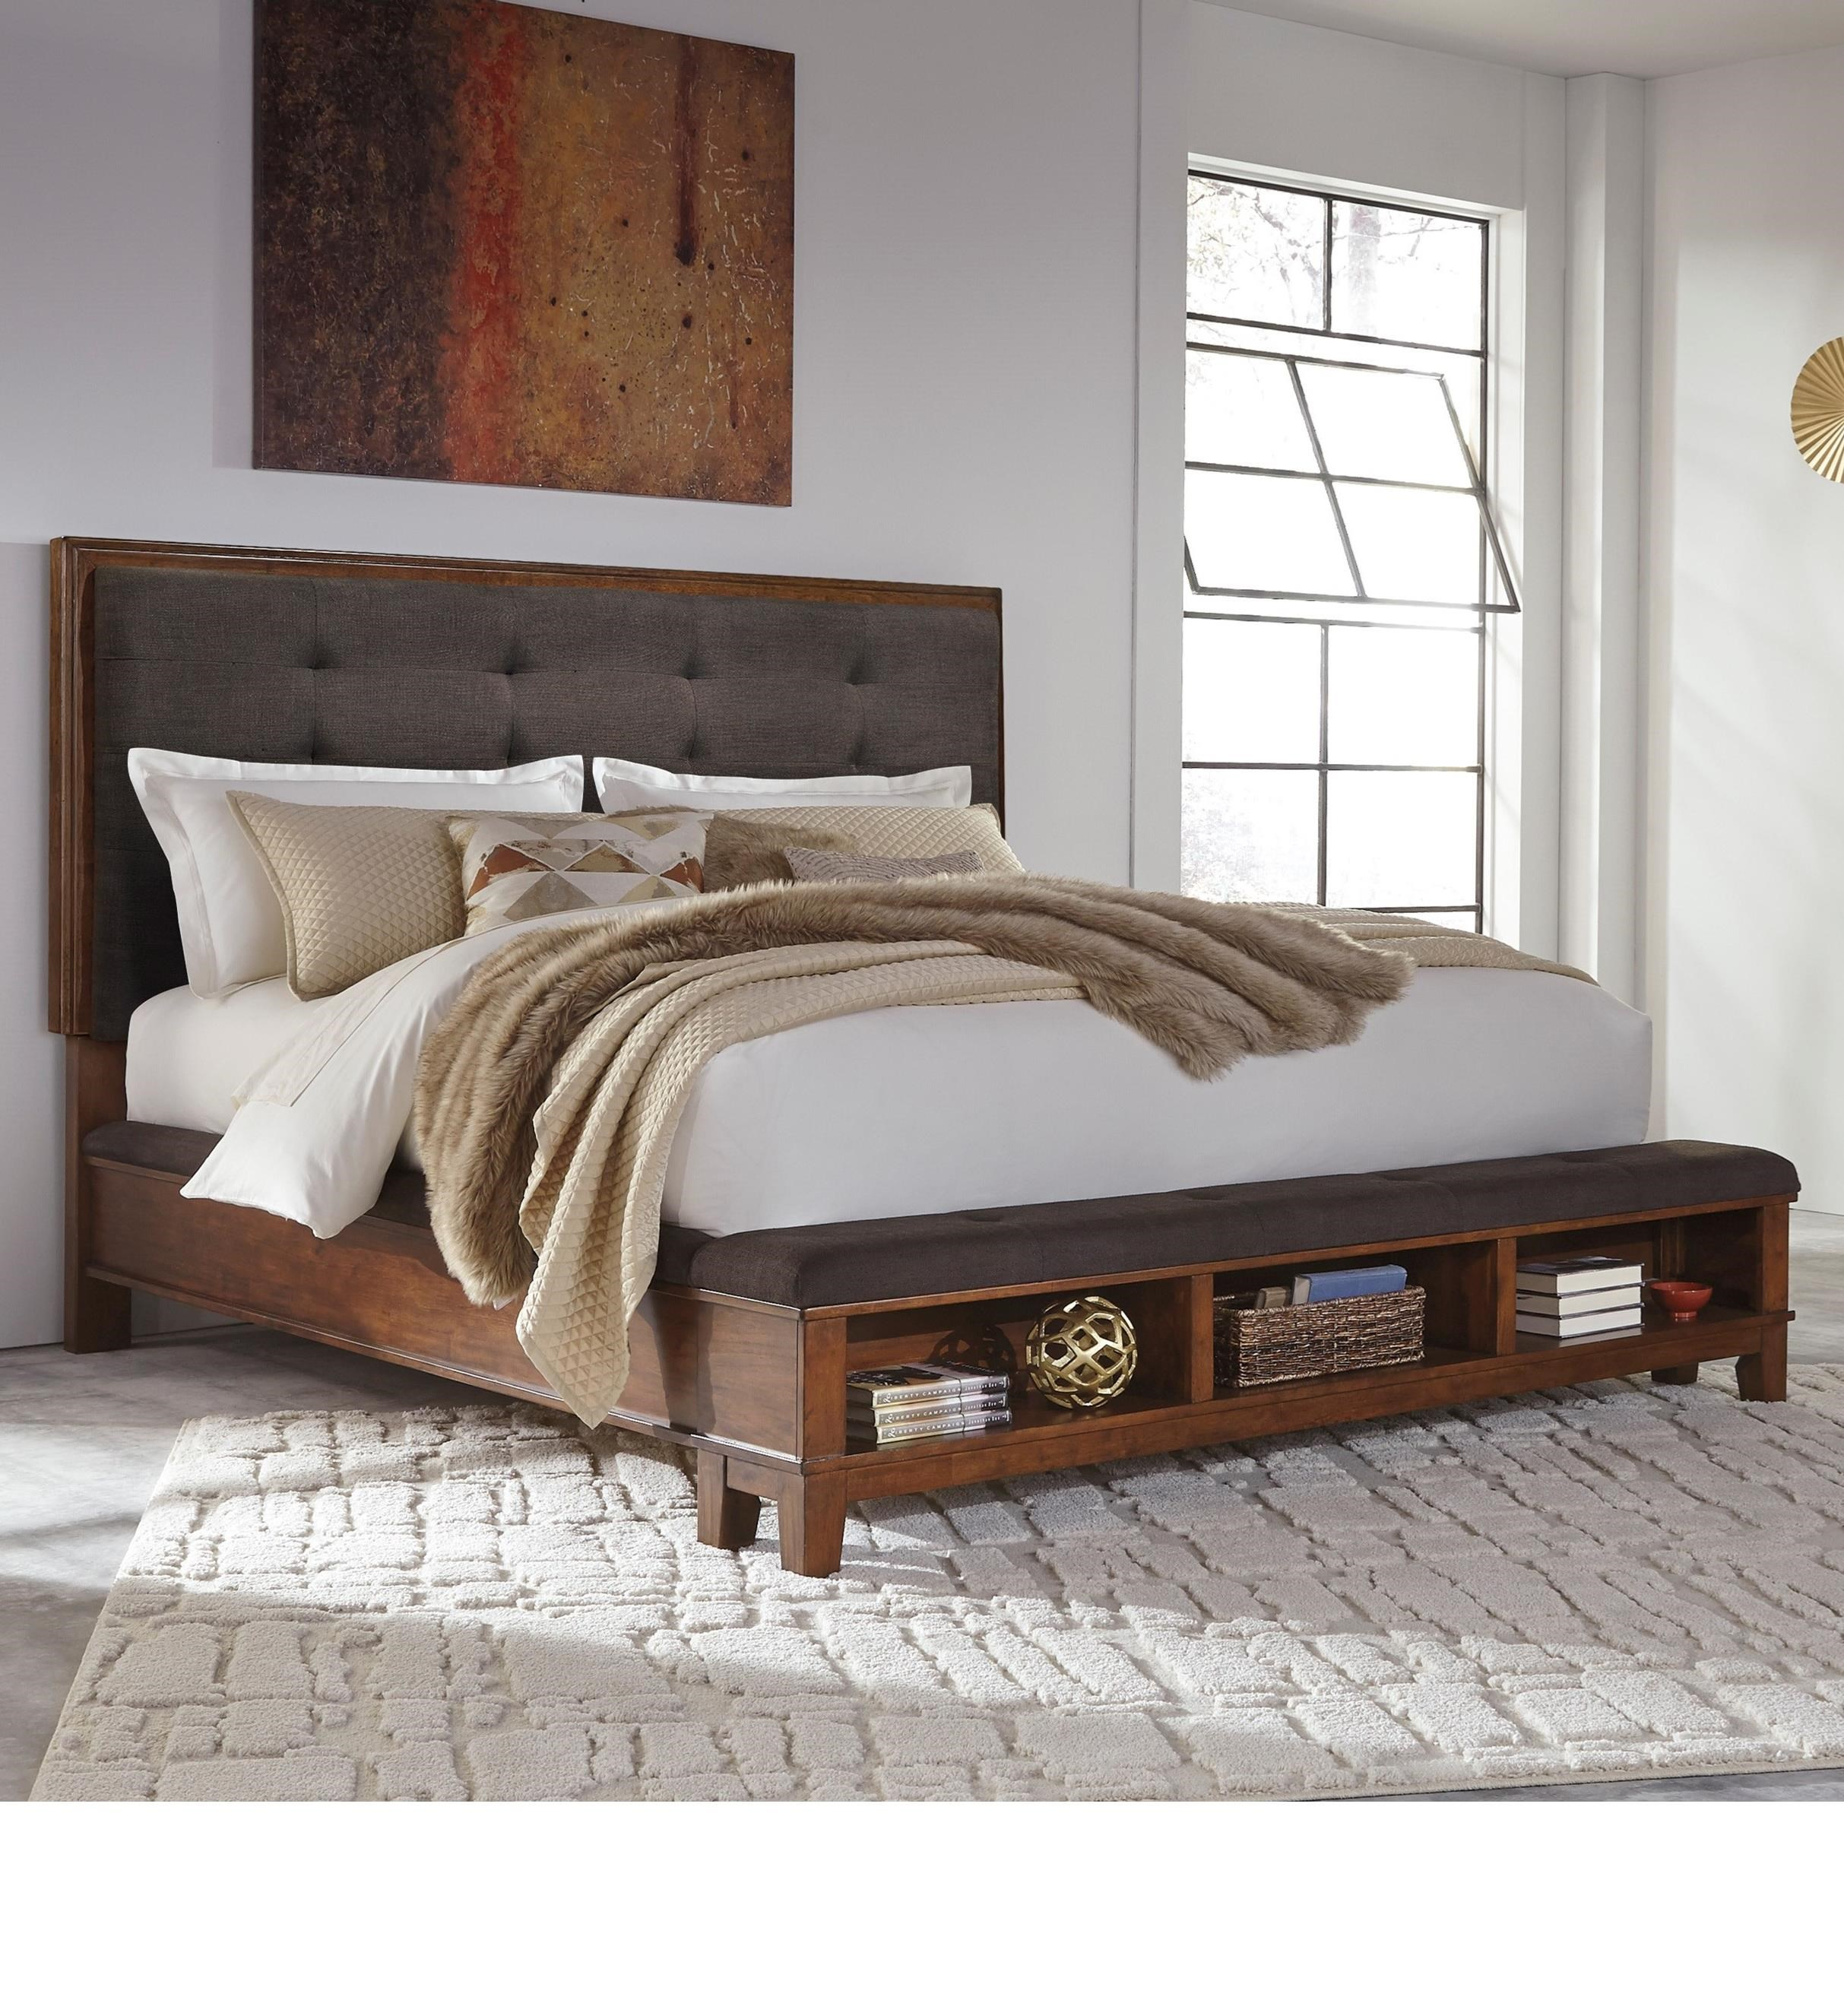 Signature Design By Ashley Ralene King Upholstered Bed With Bench Storage Footboard Royal